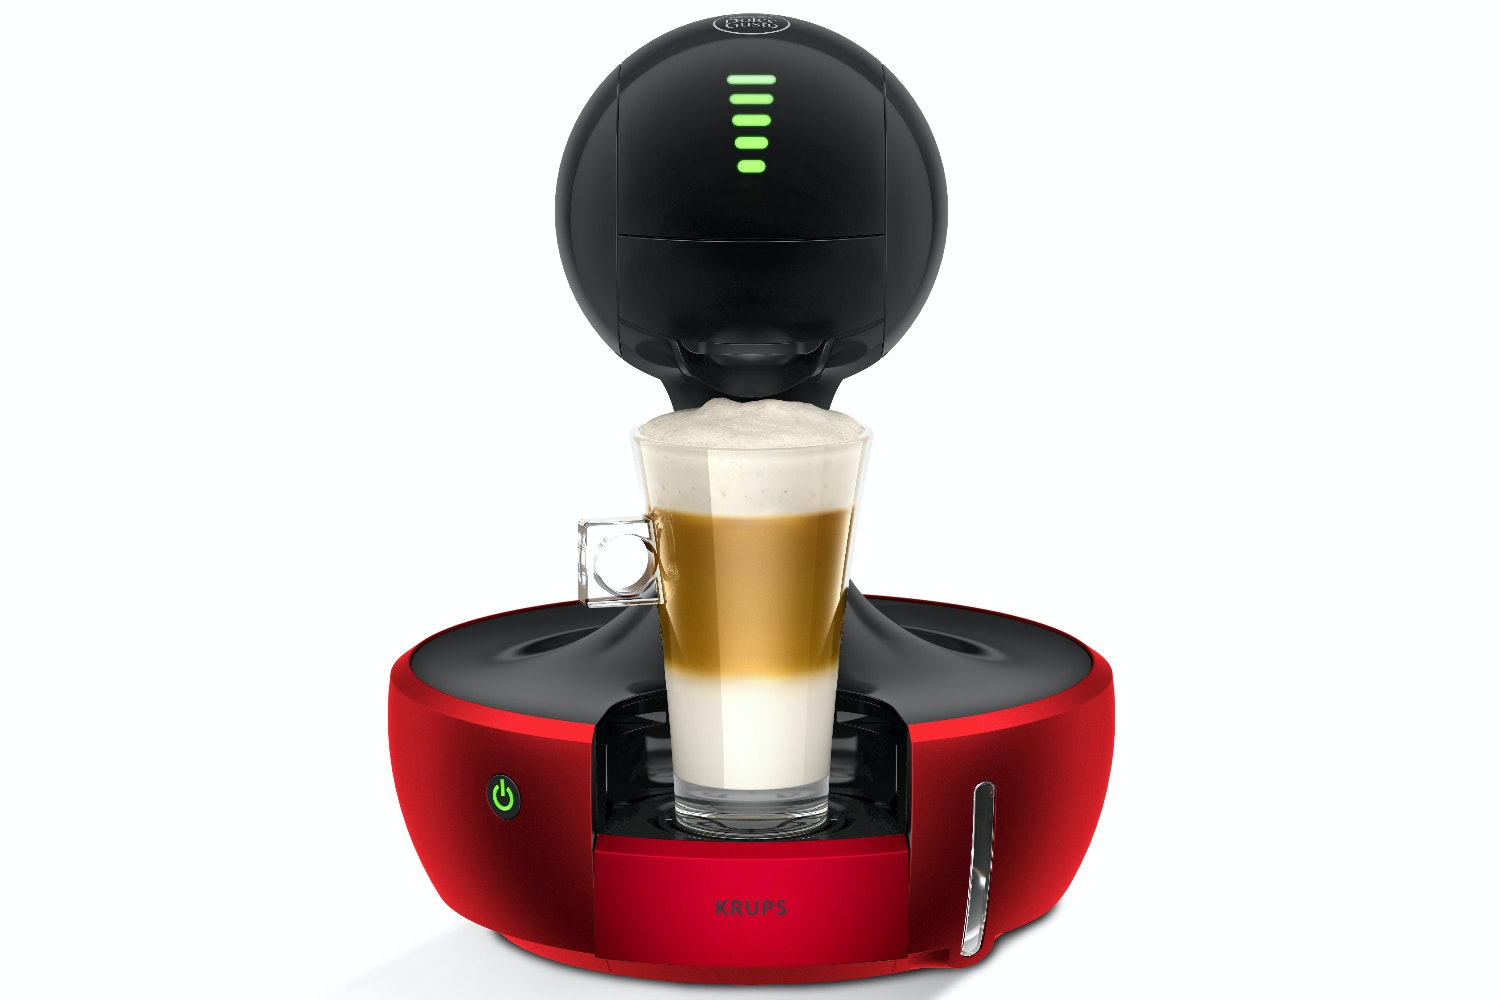 Krups Drop Dolce Gusto Coffee Machine | KP350540